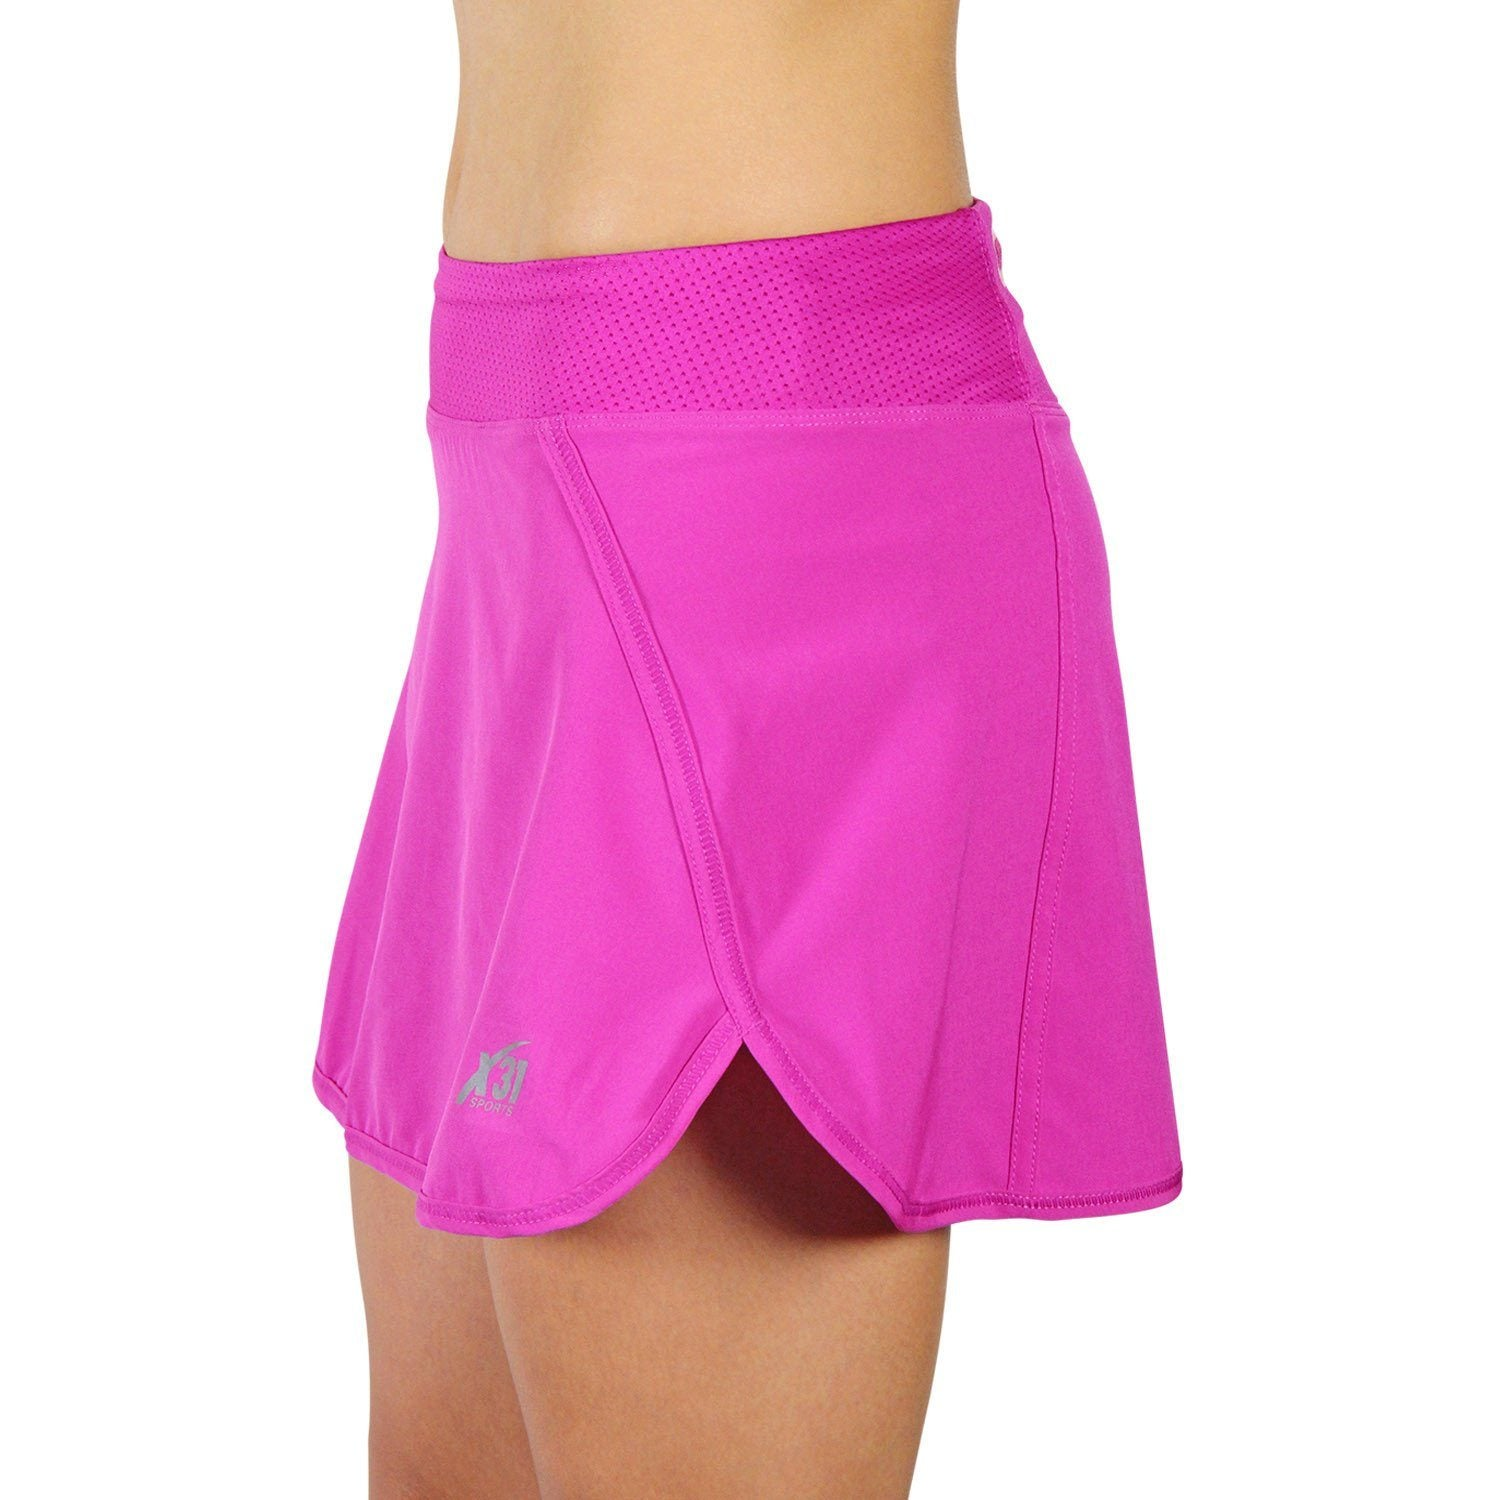 654ab7f4b Running Skirt, Workout Skort with Shorts and Zipper Pocket